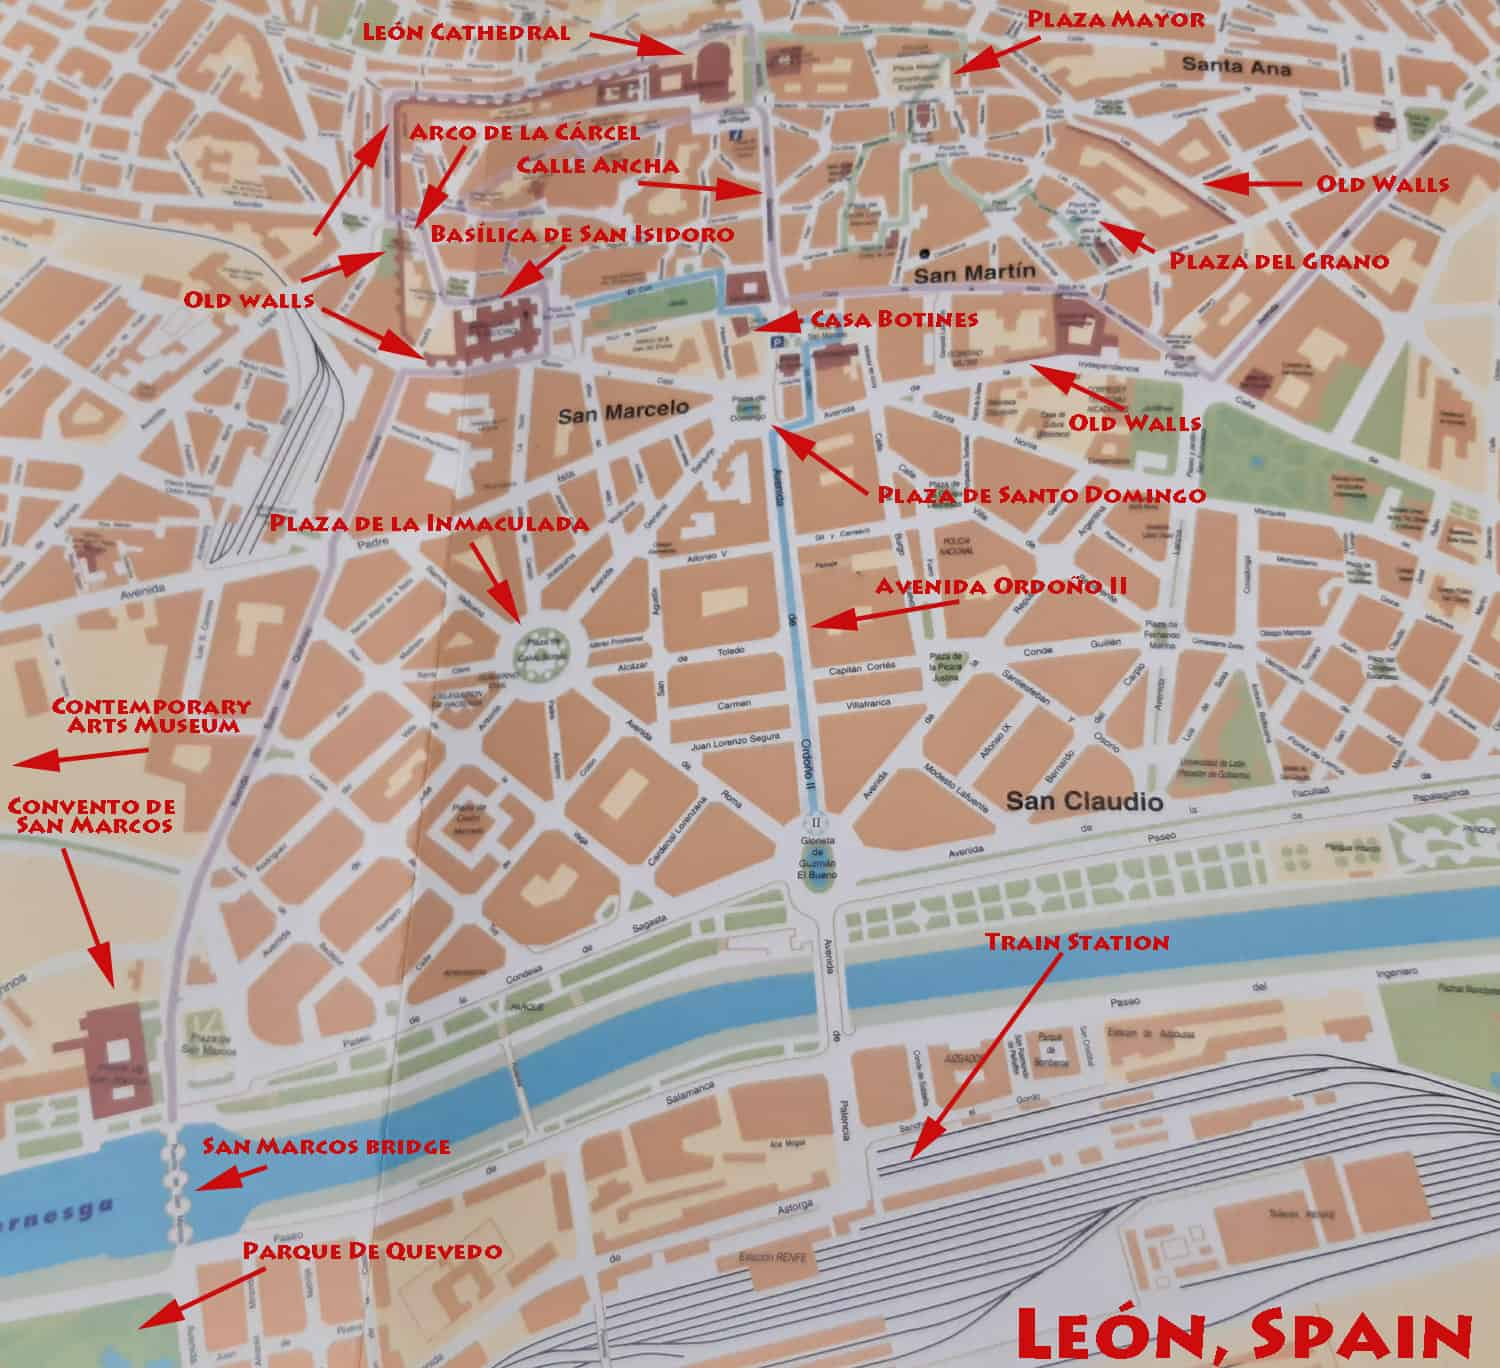 Map of Leon, Spain